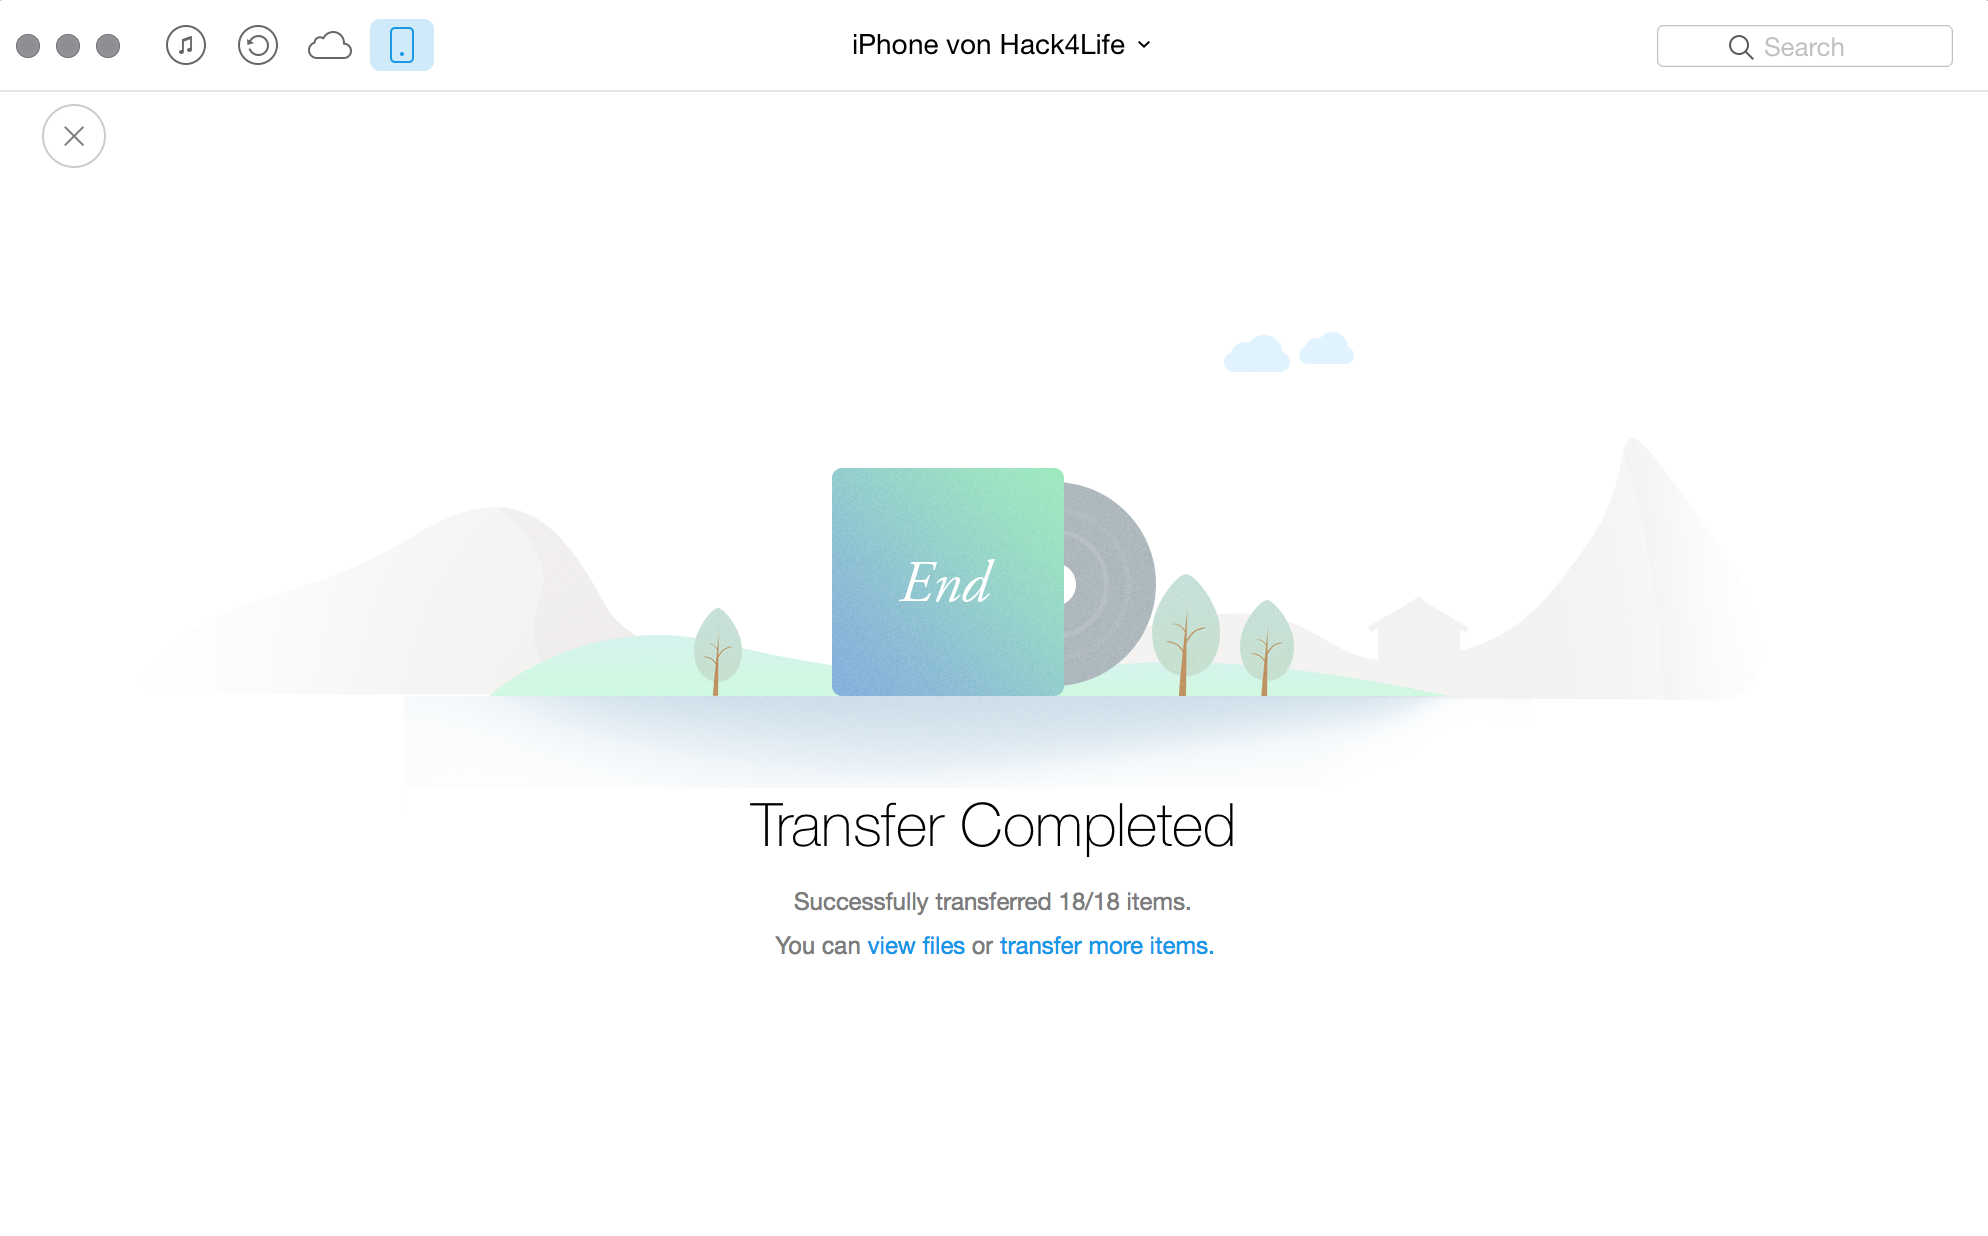 anytrans-review-ios-10-version-transfer-complete-videos-4k